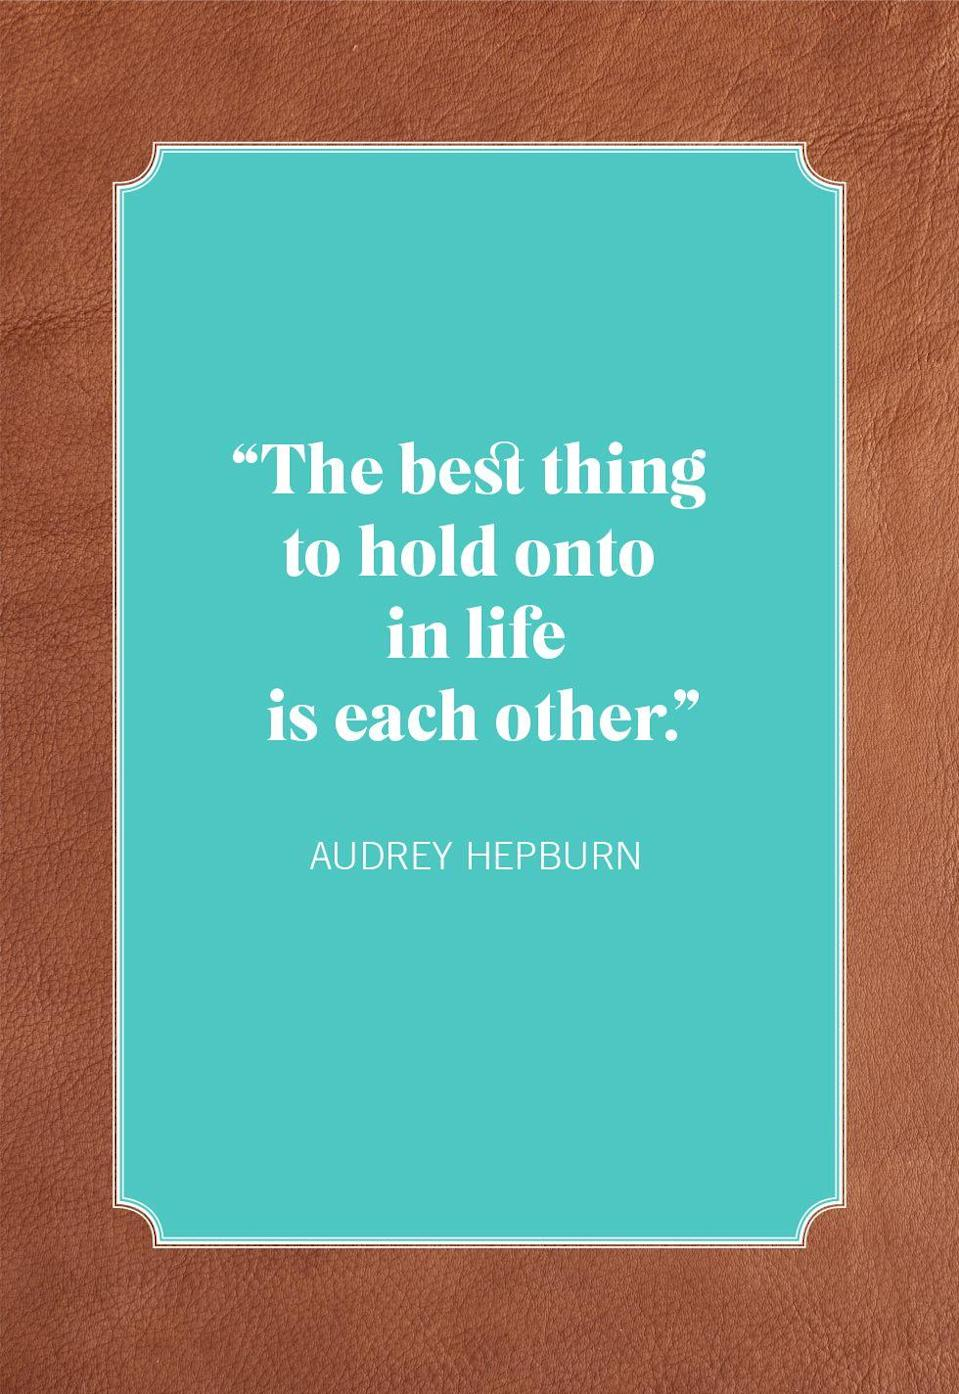 "<p>""The best thing to hold onto in life is each other.""</p>"